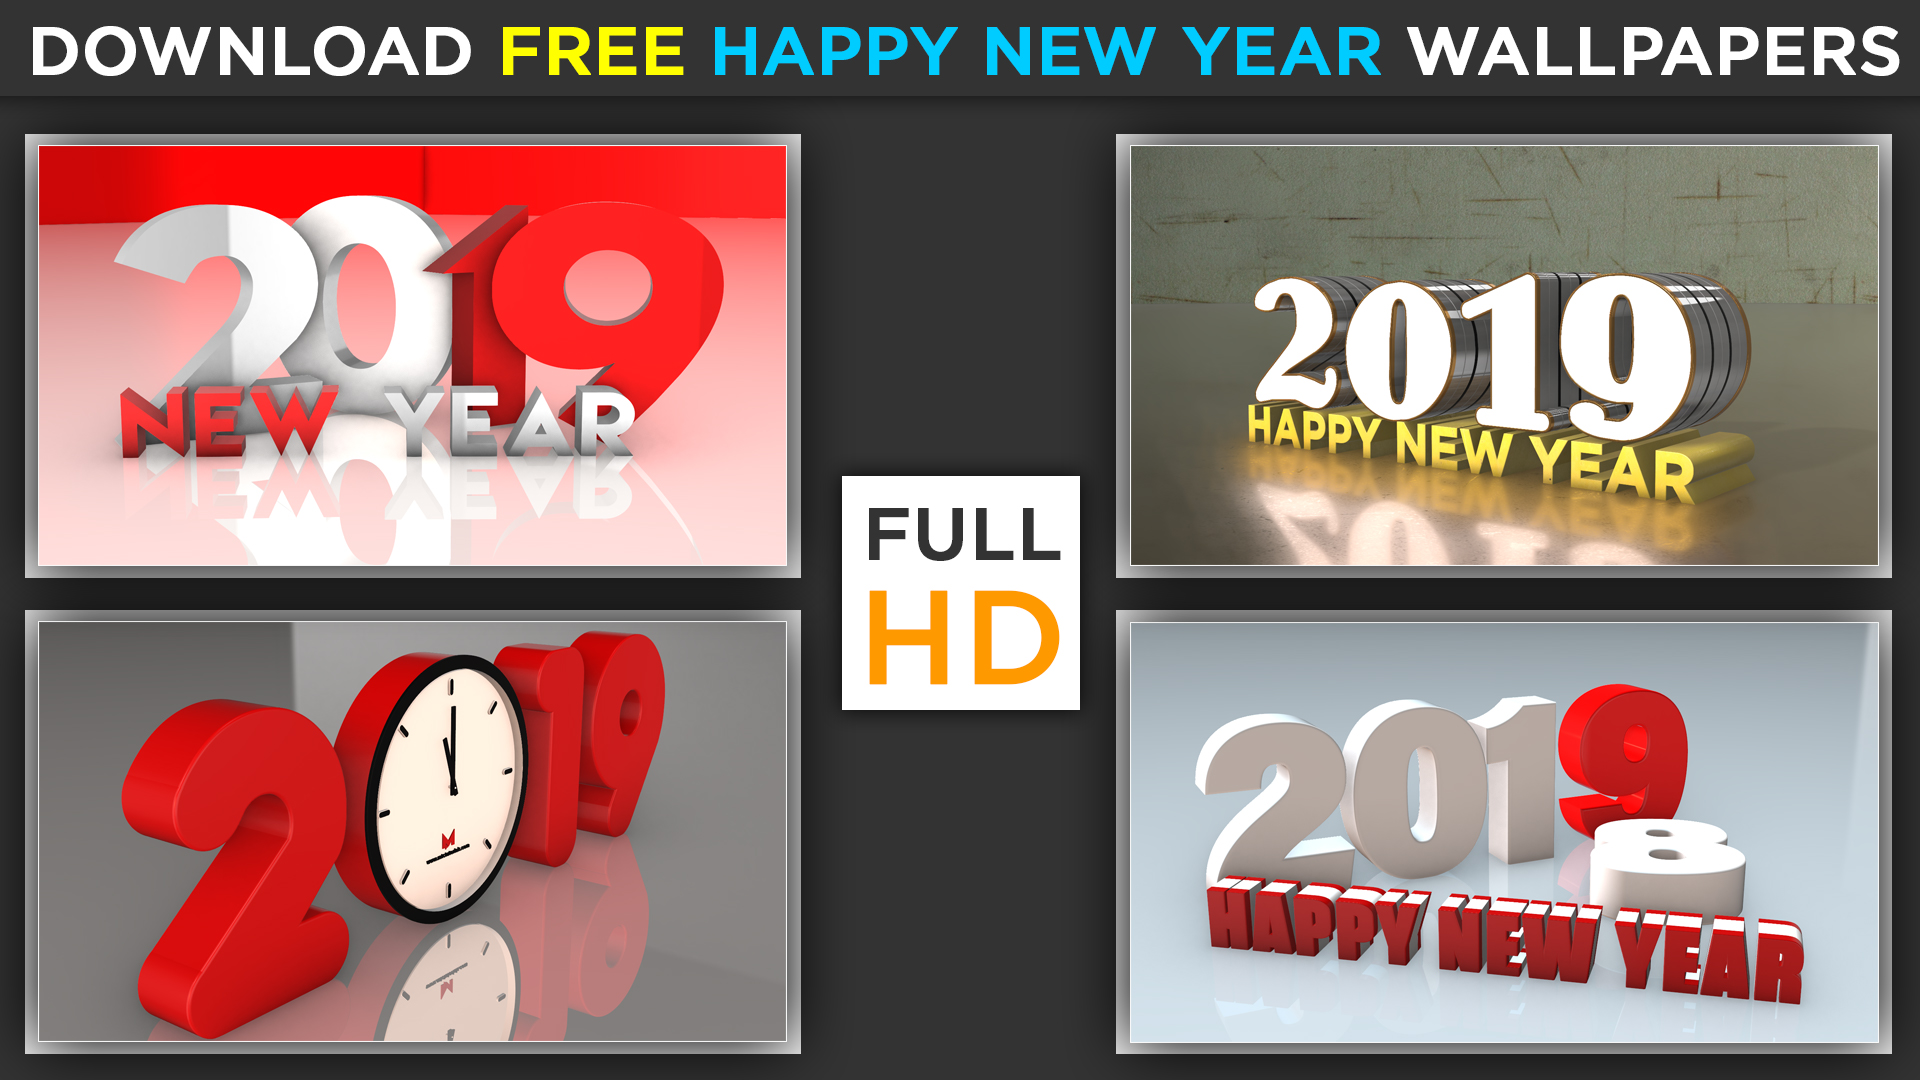 Download free happy new year wallpapers